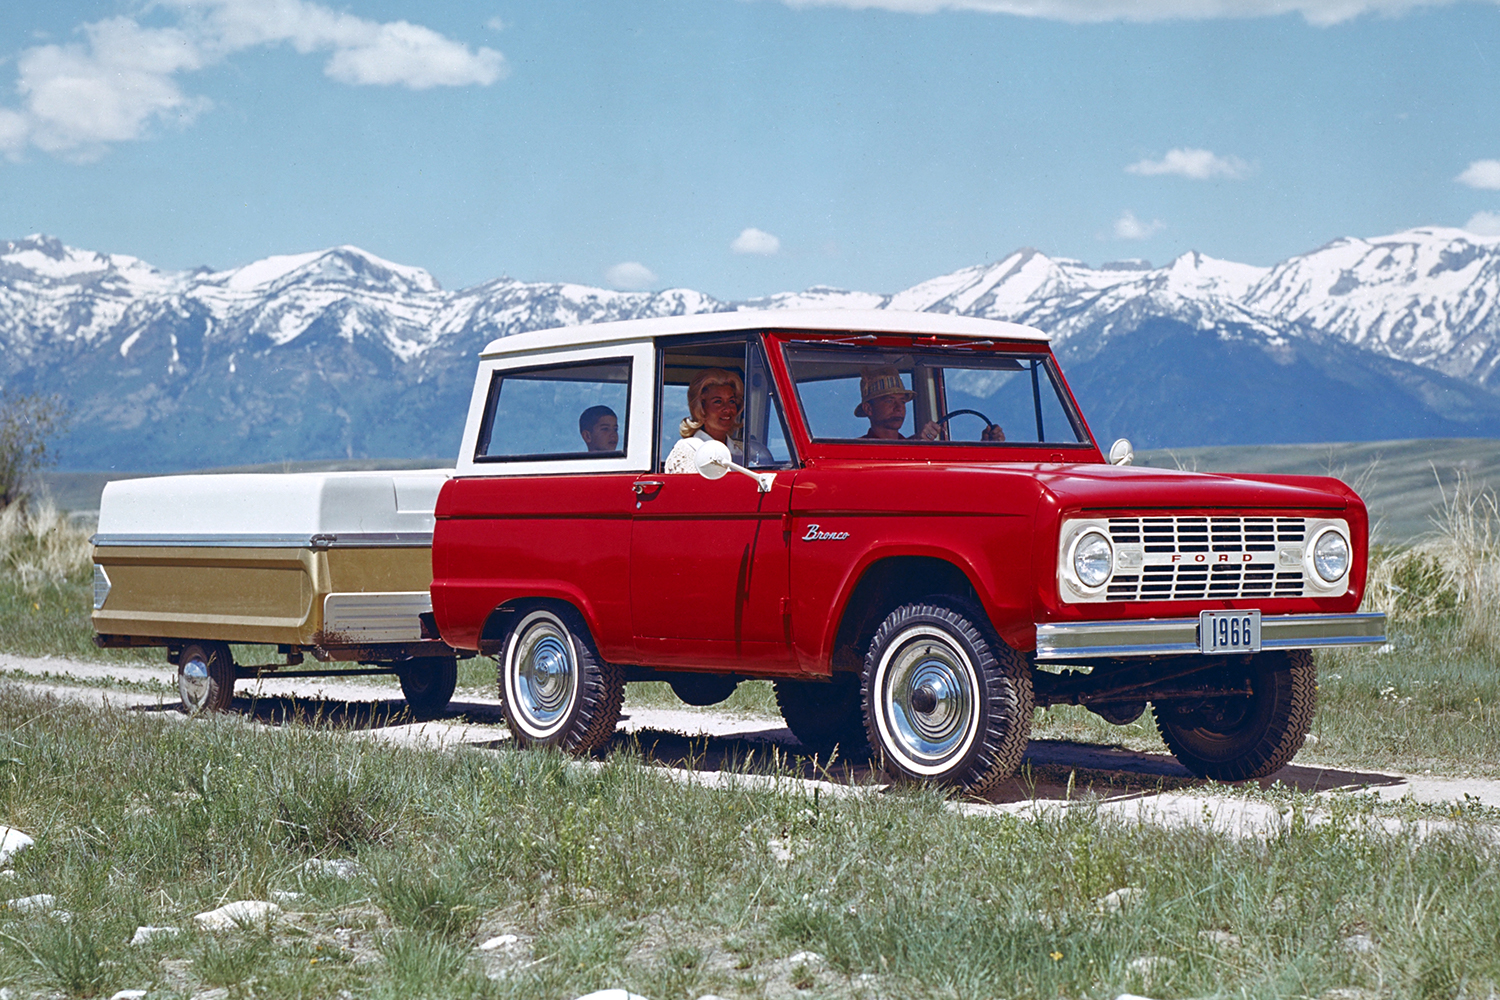 1966 red and white Ford Bronco towing a camper